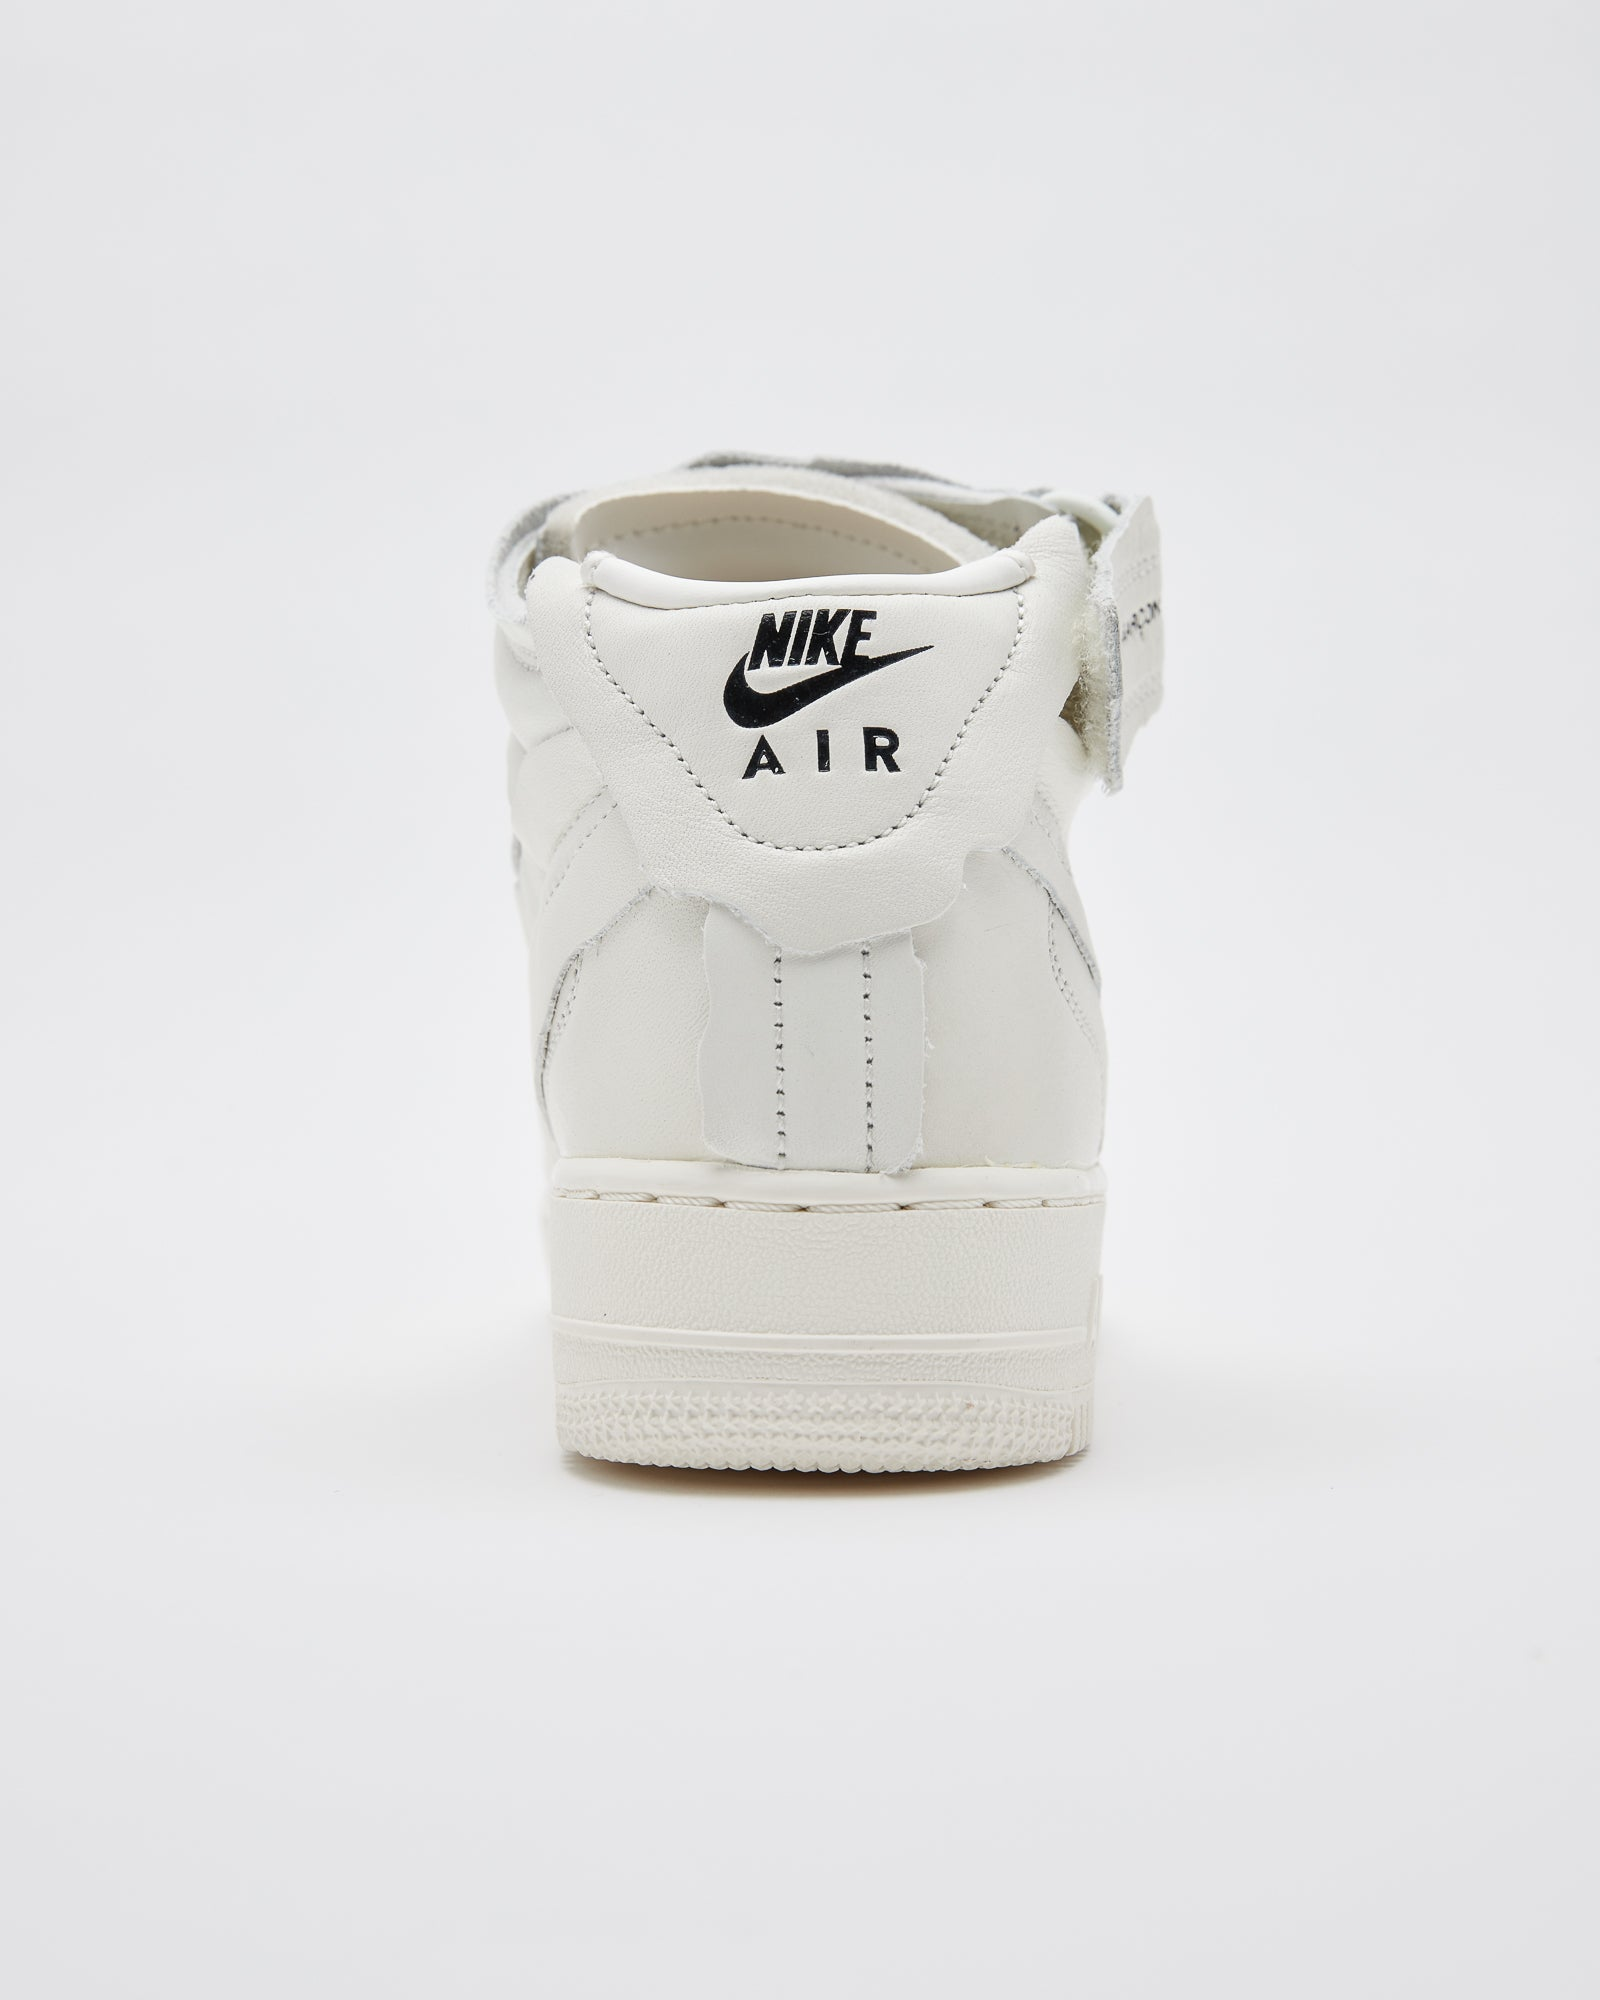 Nike Air Force 1 Mid in Sail